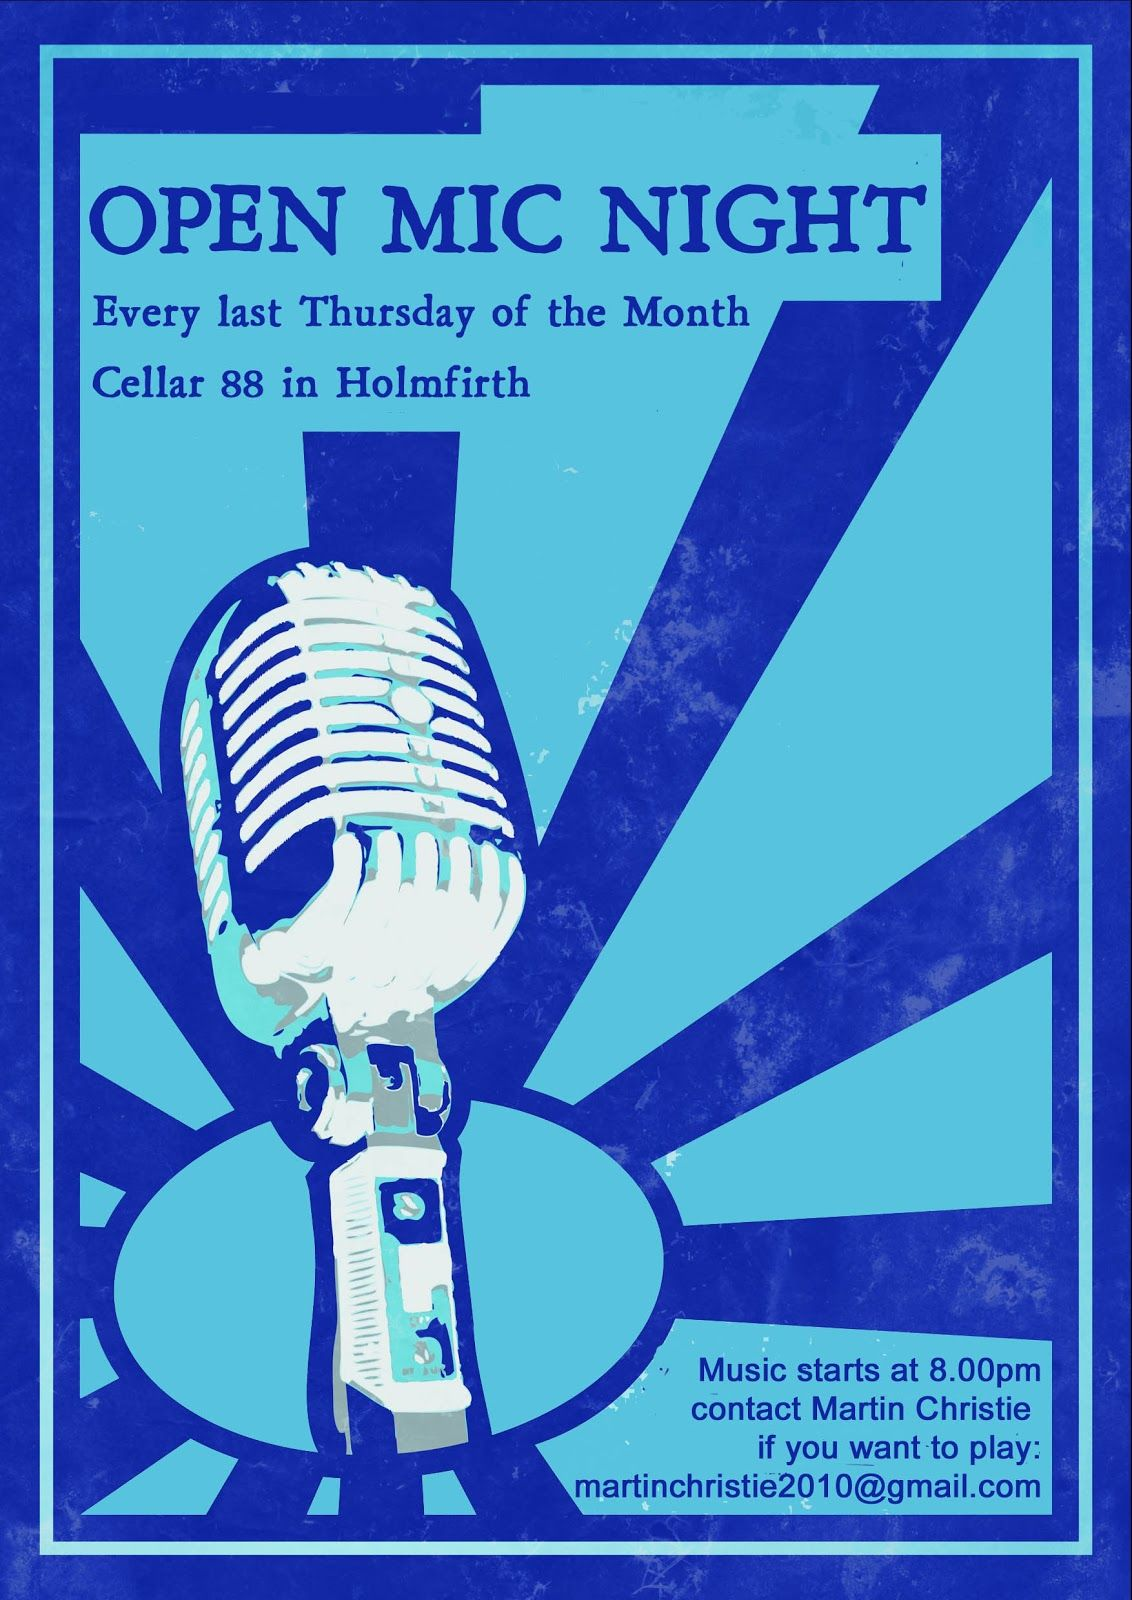 local open mic posters - Google Search | IGW | Pinterest